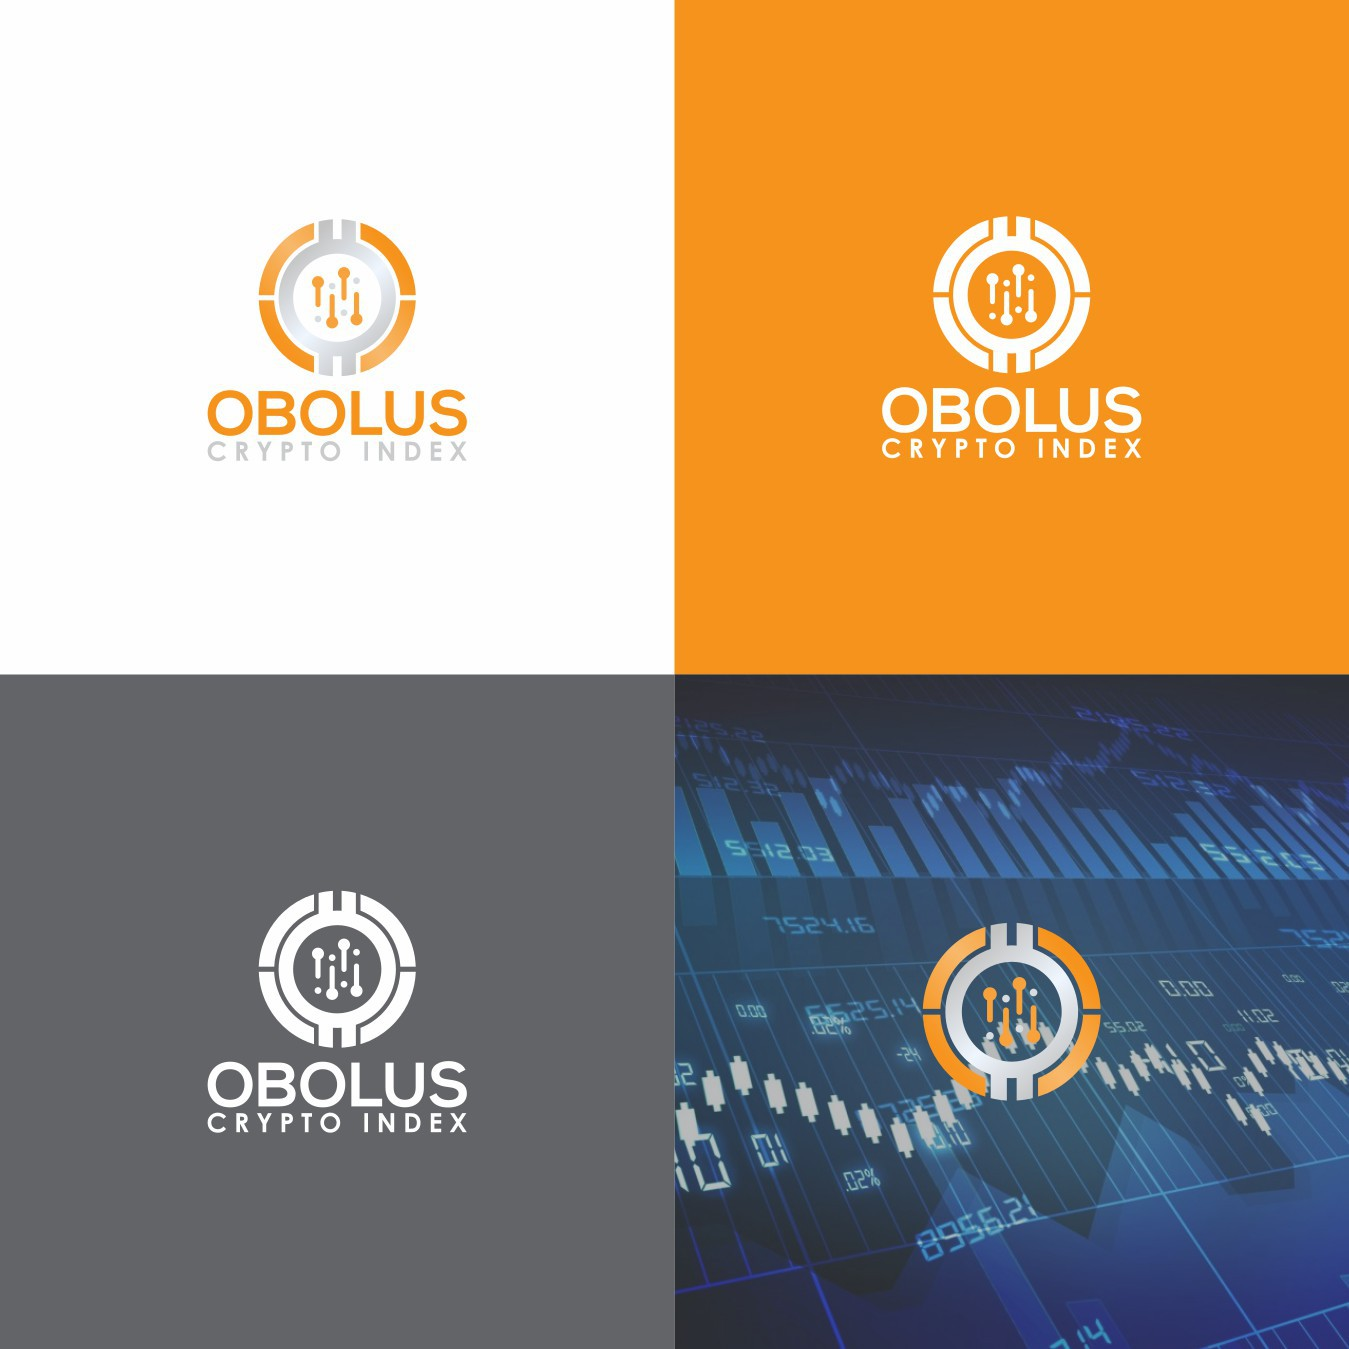 Obolus brand - a classic touch to crypto currency investing